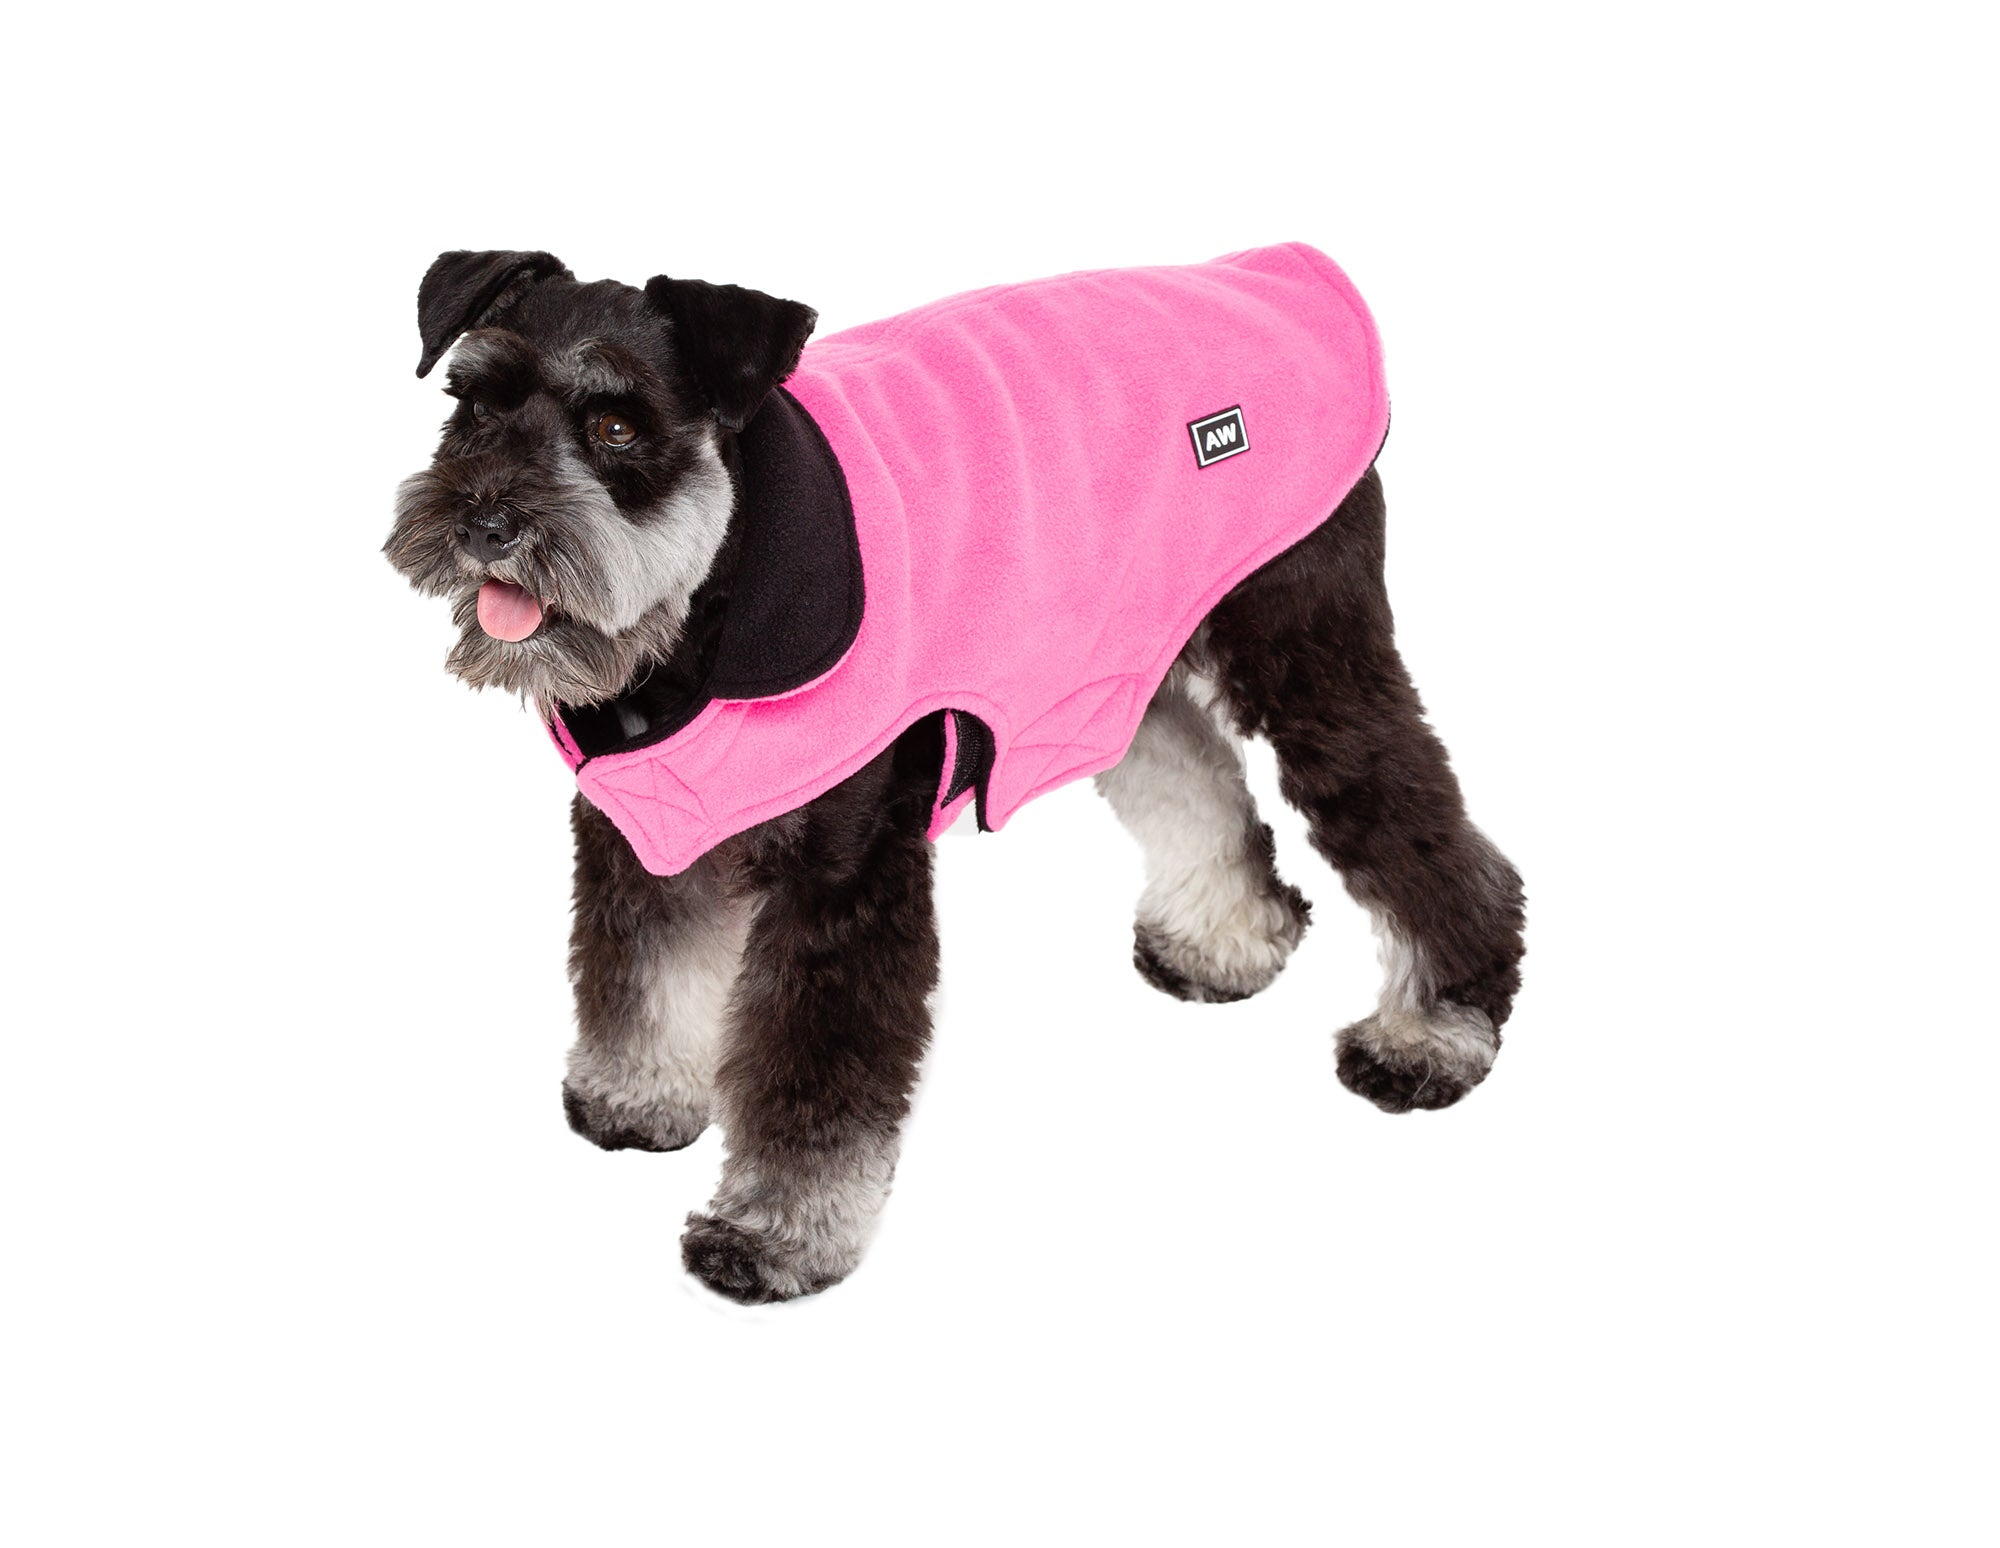 Polar Fleece - Animal Wrapper - 4 Color Options